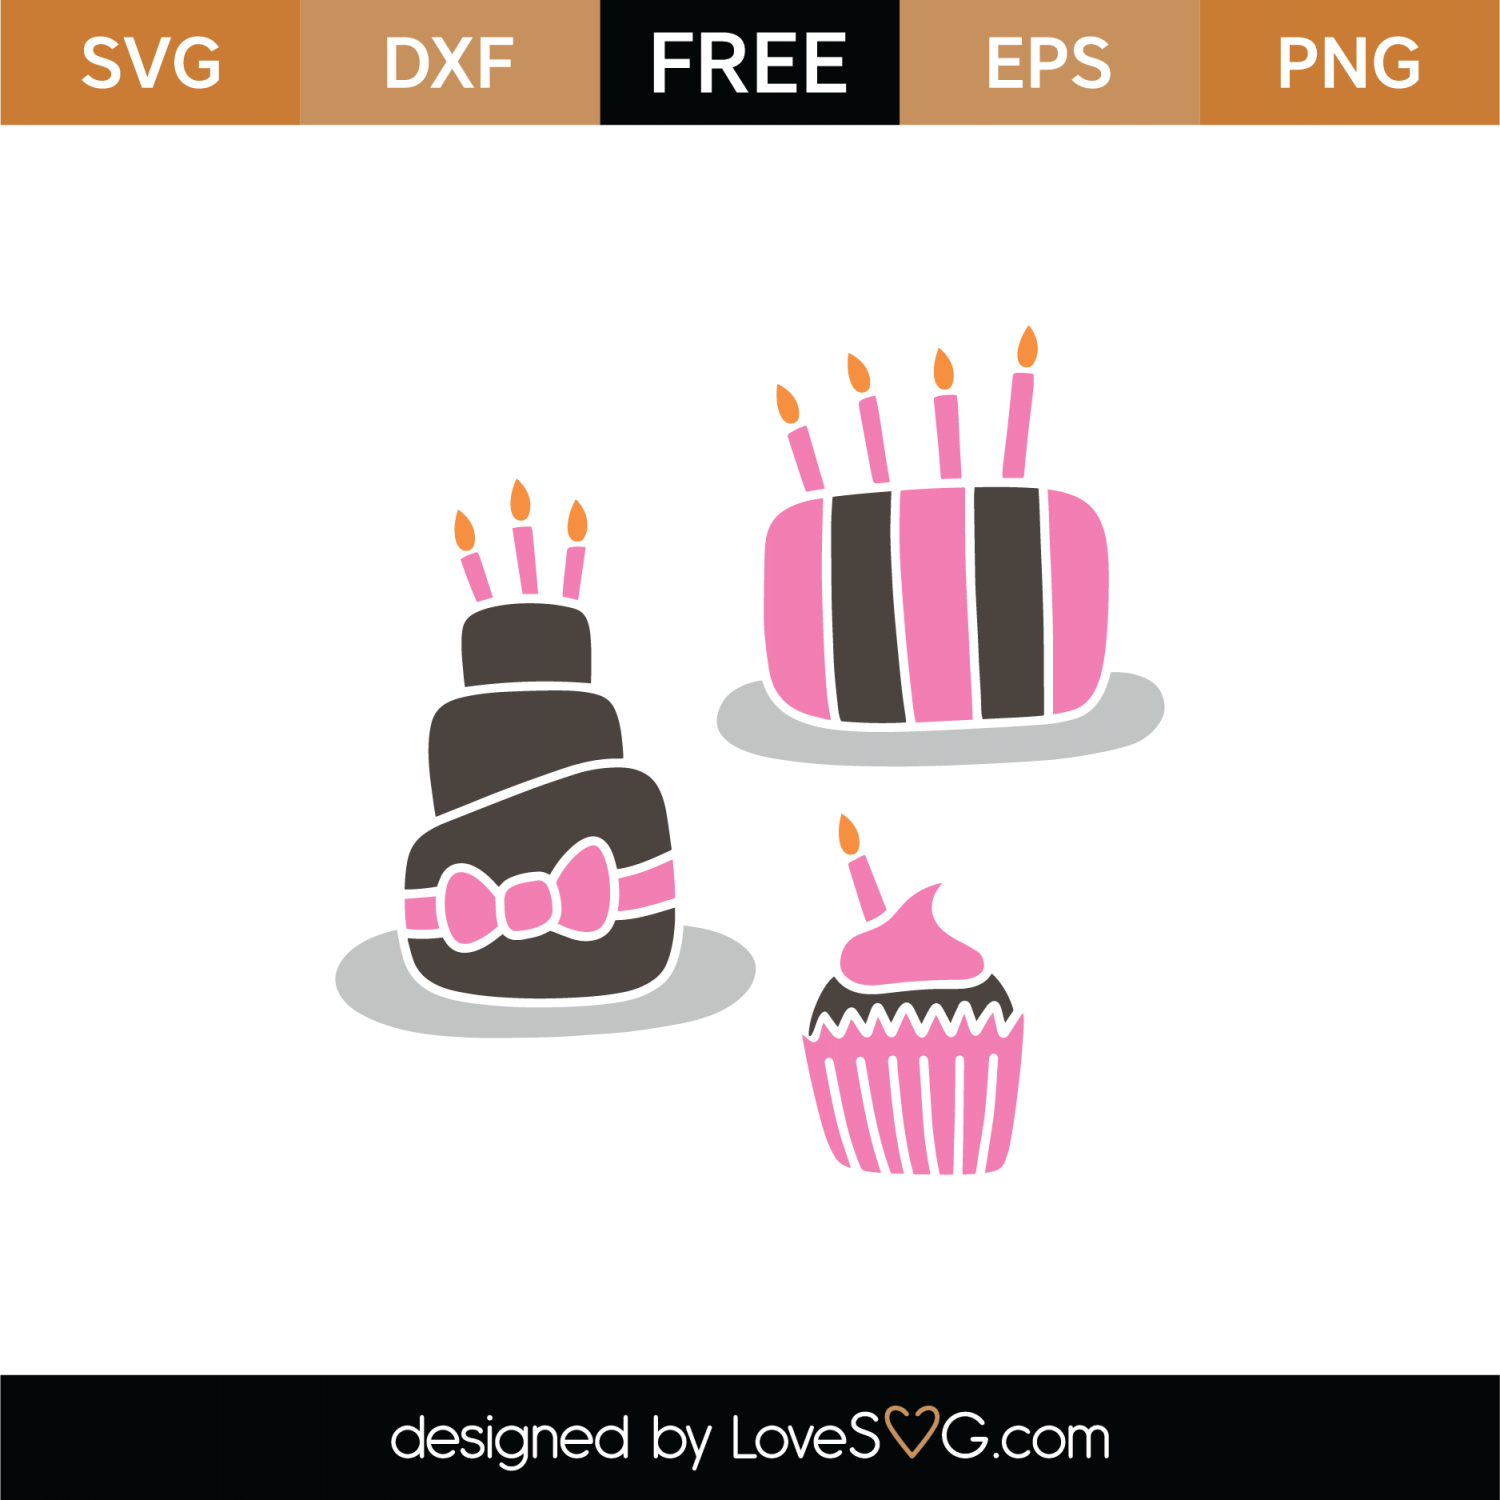 Free Birthday Cakes SVG Cut File